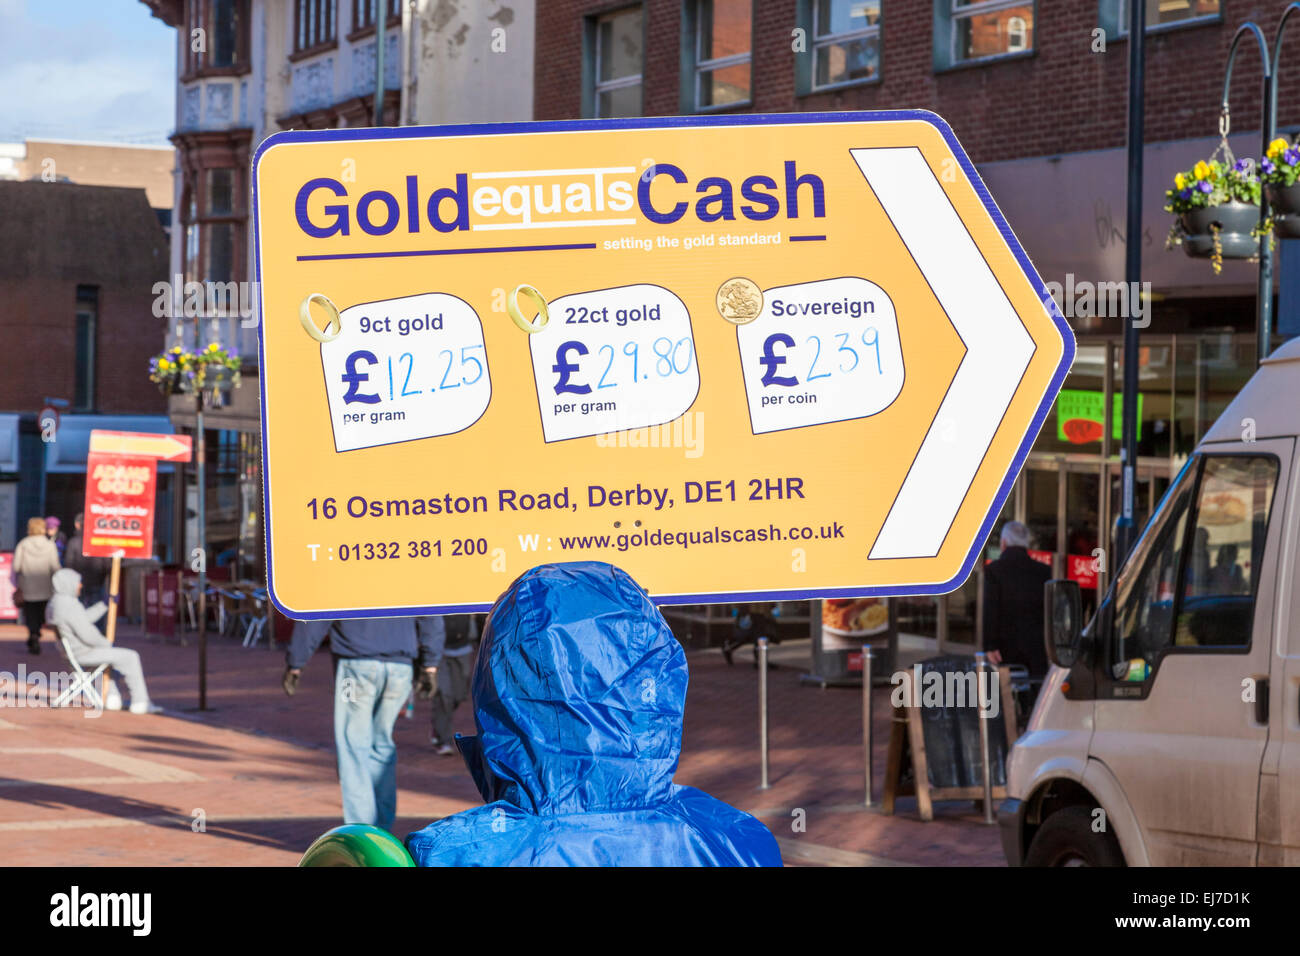 Low paid jobs. Unskilled worker working as a sign waver. Person holding an advertising board for Gold Equals Cash, - Stock Image